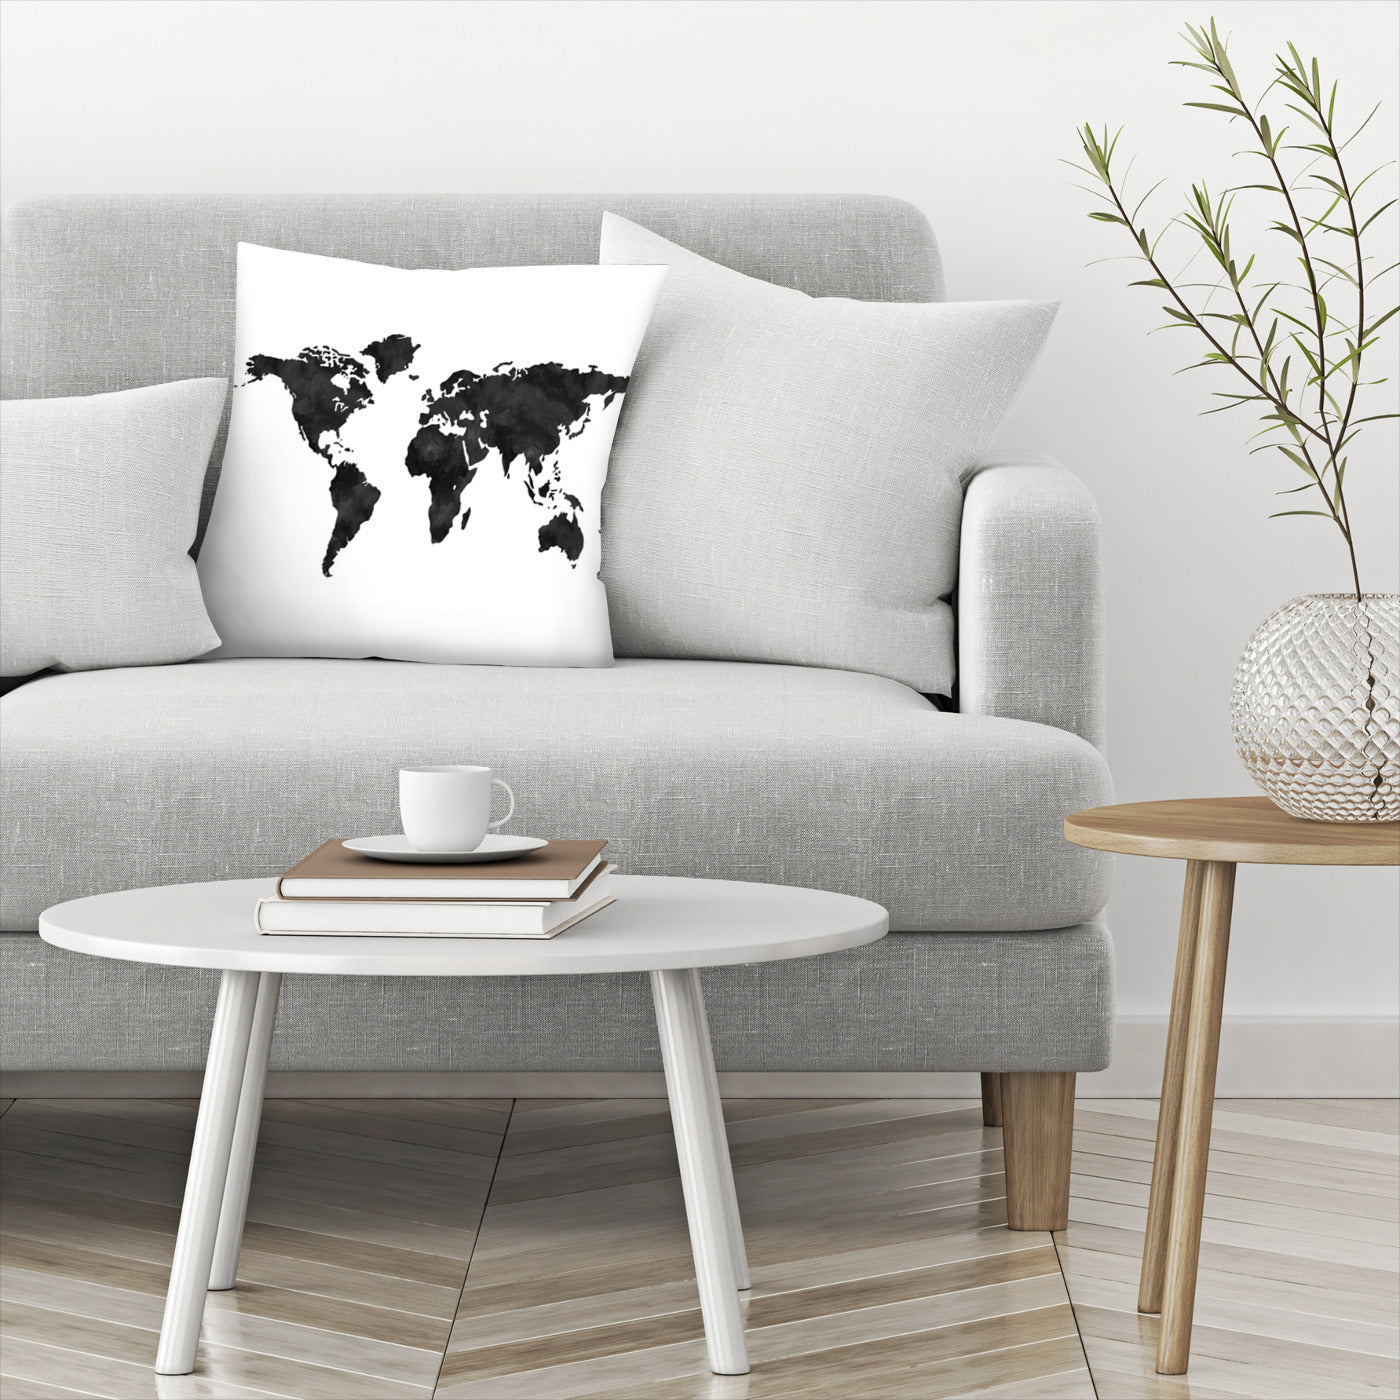 World Map Black by Amy Brinkman Decorative Pillow - Decorative Pillow - Americanflat